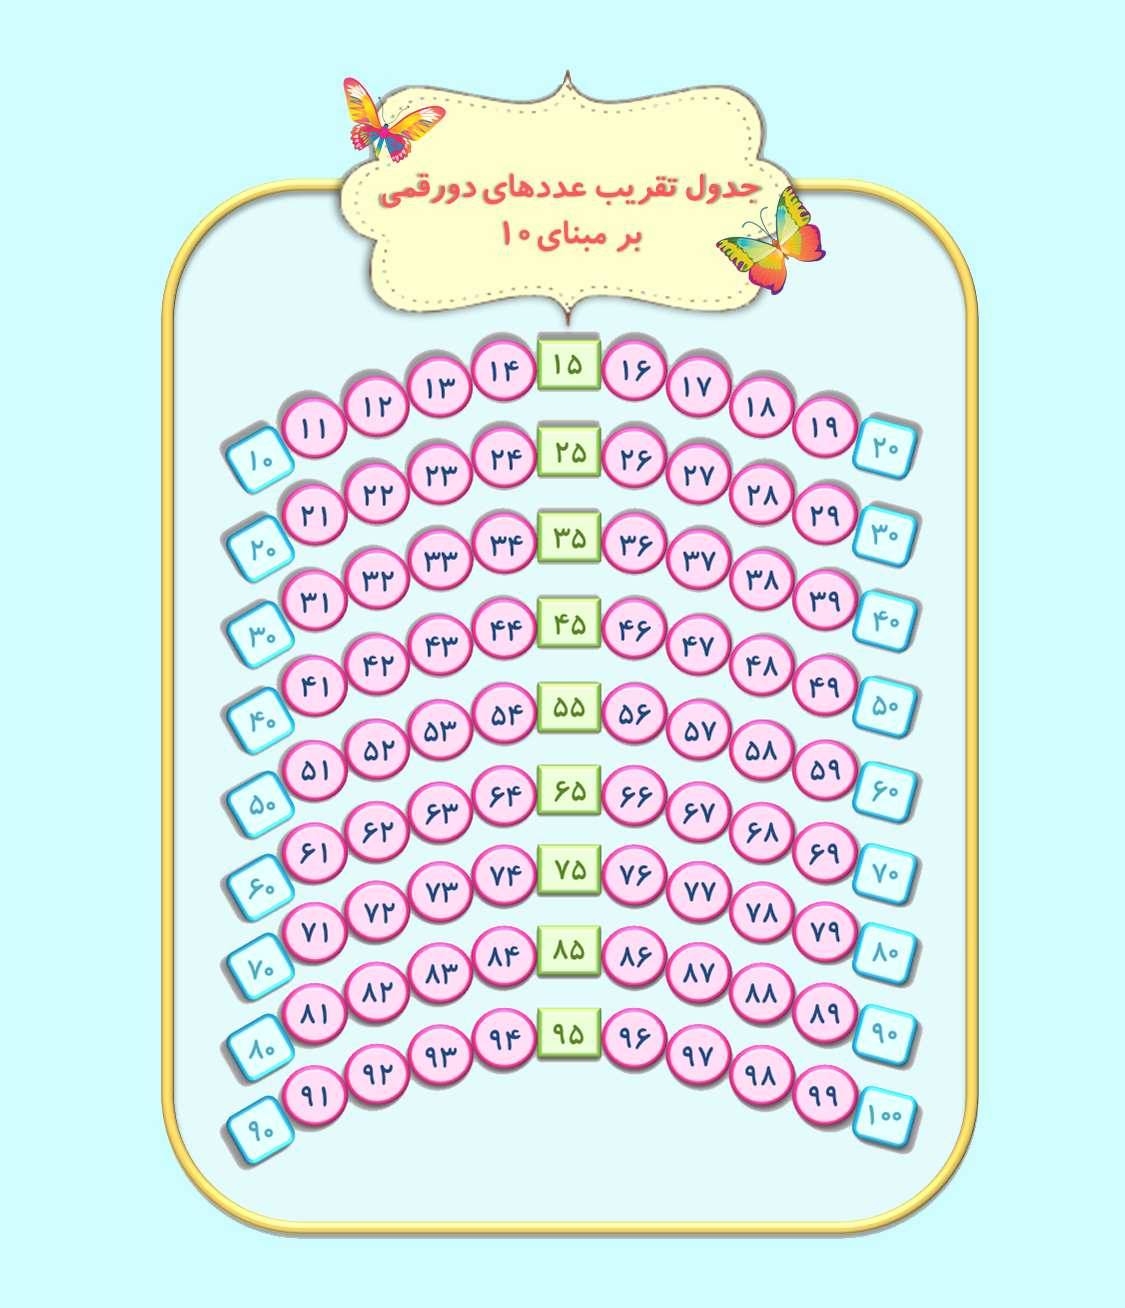 http://s8.picofile.com/file/8275170176/جدول_تقریبی.png